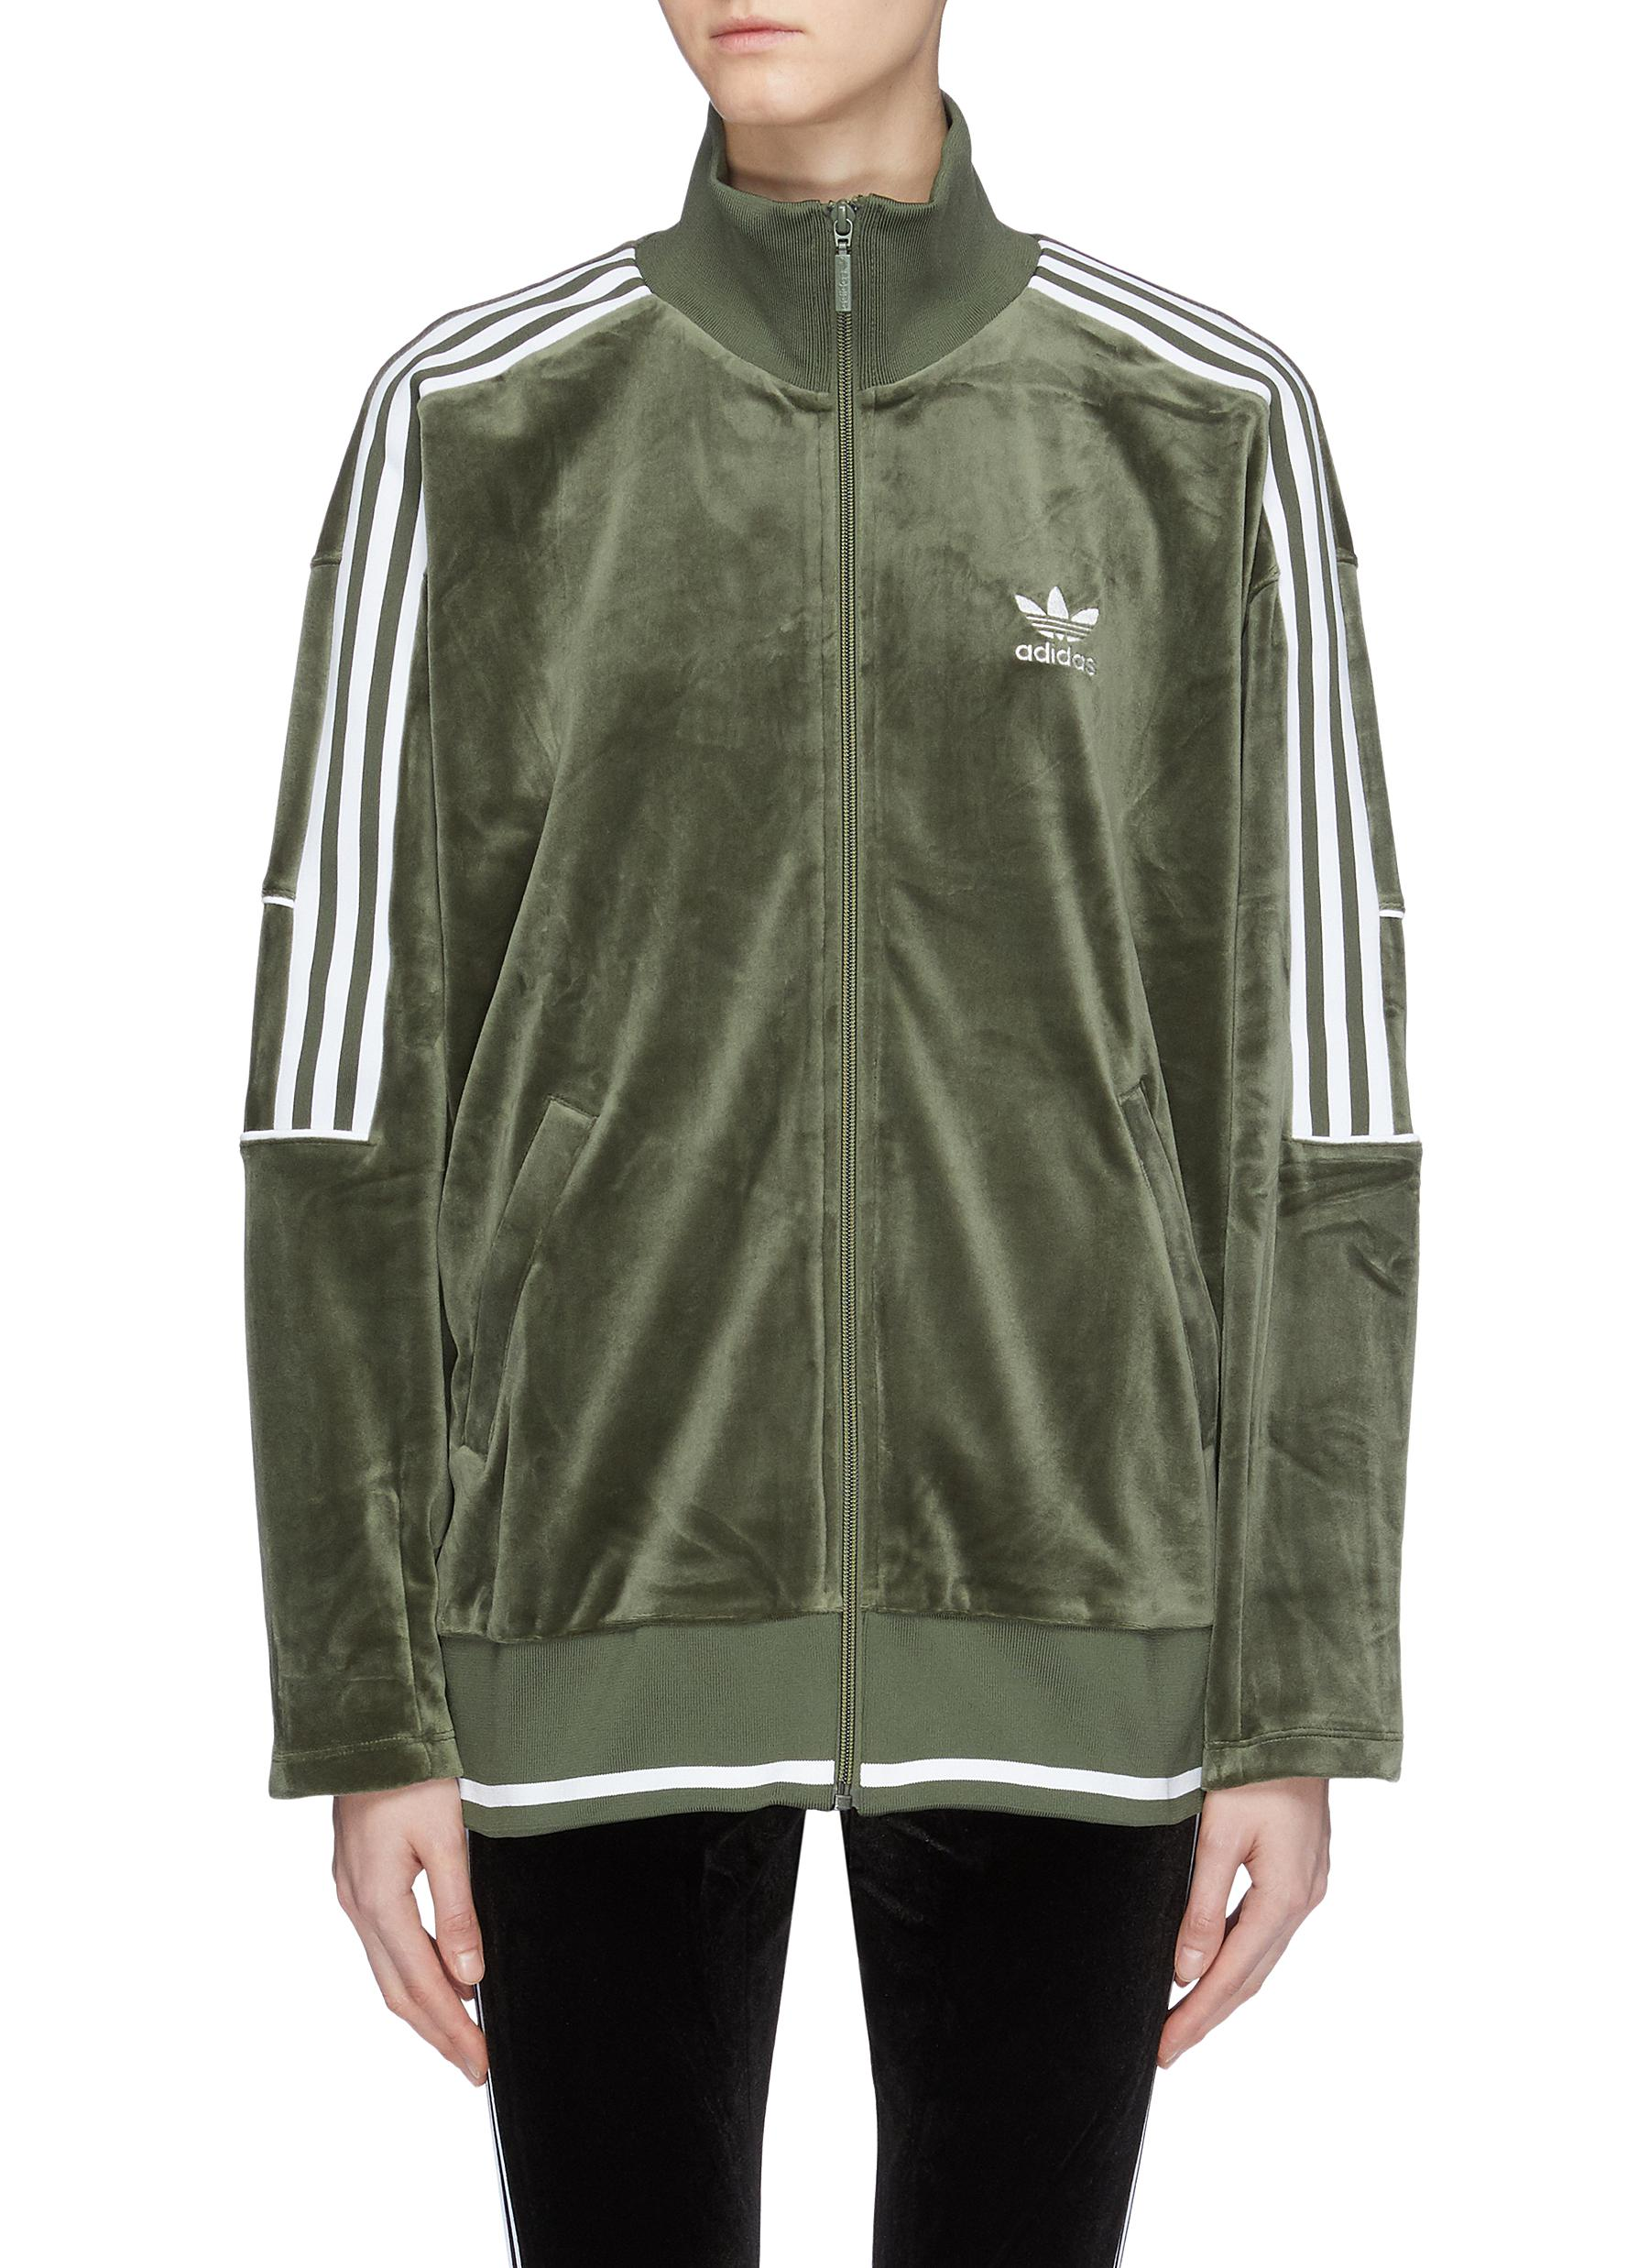 ba6948ab2ea3 Main View - Click To Enlarge - adidas - 3-Stripes sleeve velvet track jacket